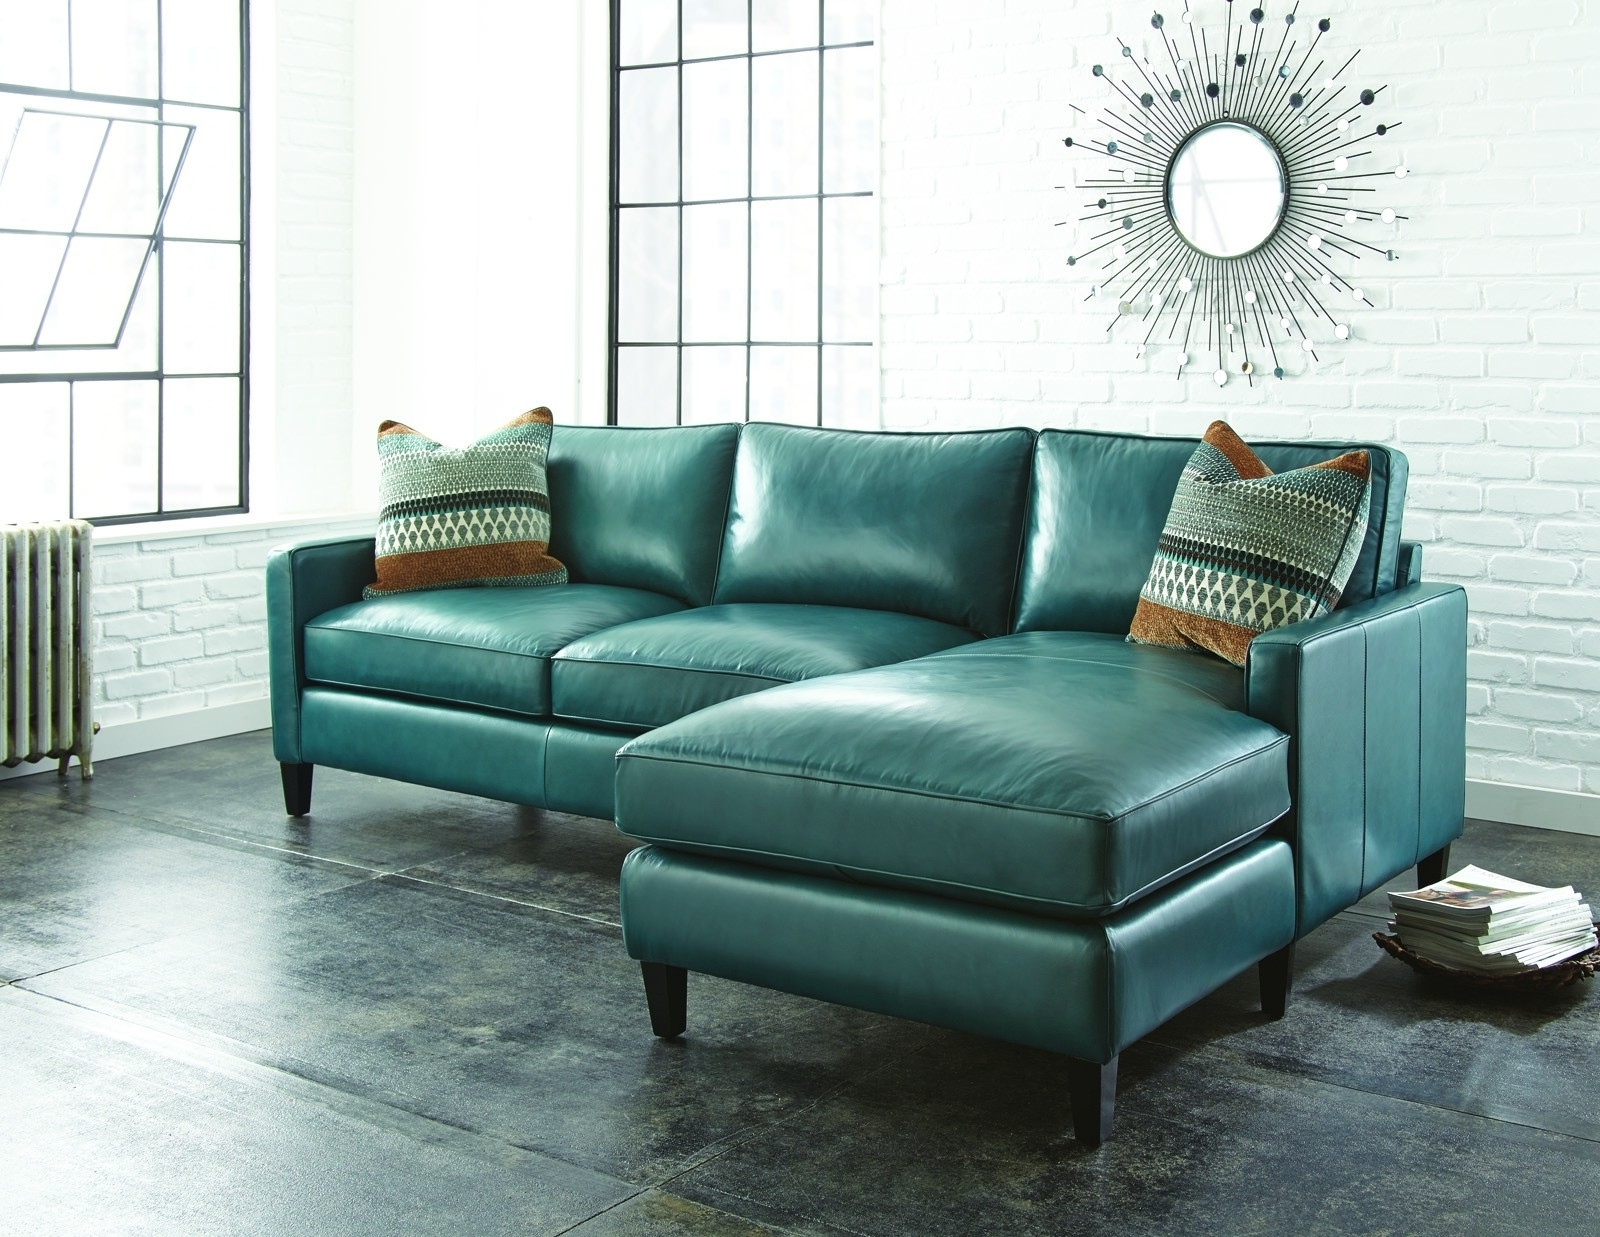 Turquoise Leather Sectional Sofa For Living Room With Sun Wall Intended For Famous Turquoise Sofas (View 15 of 15)